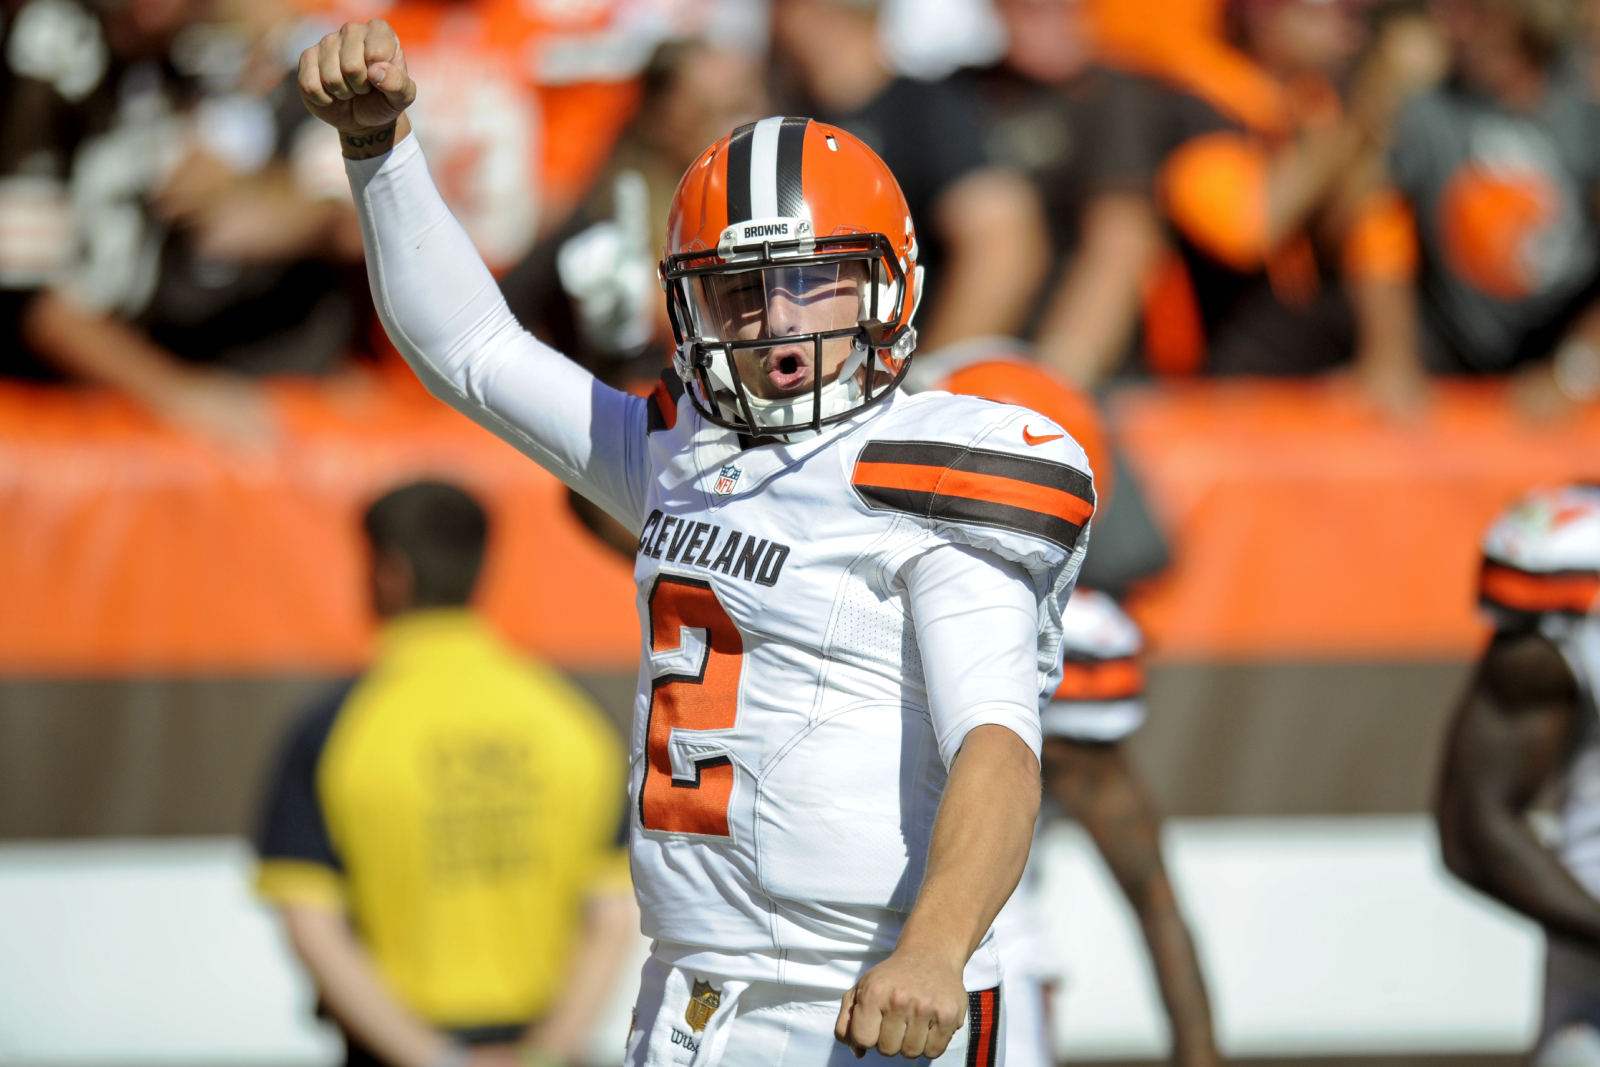 Johnny Manziel hasn't played in the NFL since 2015, but the former Heisman Trophy winner could be back on the football field very soon.